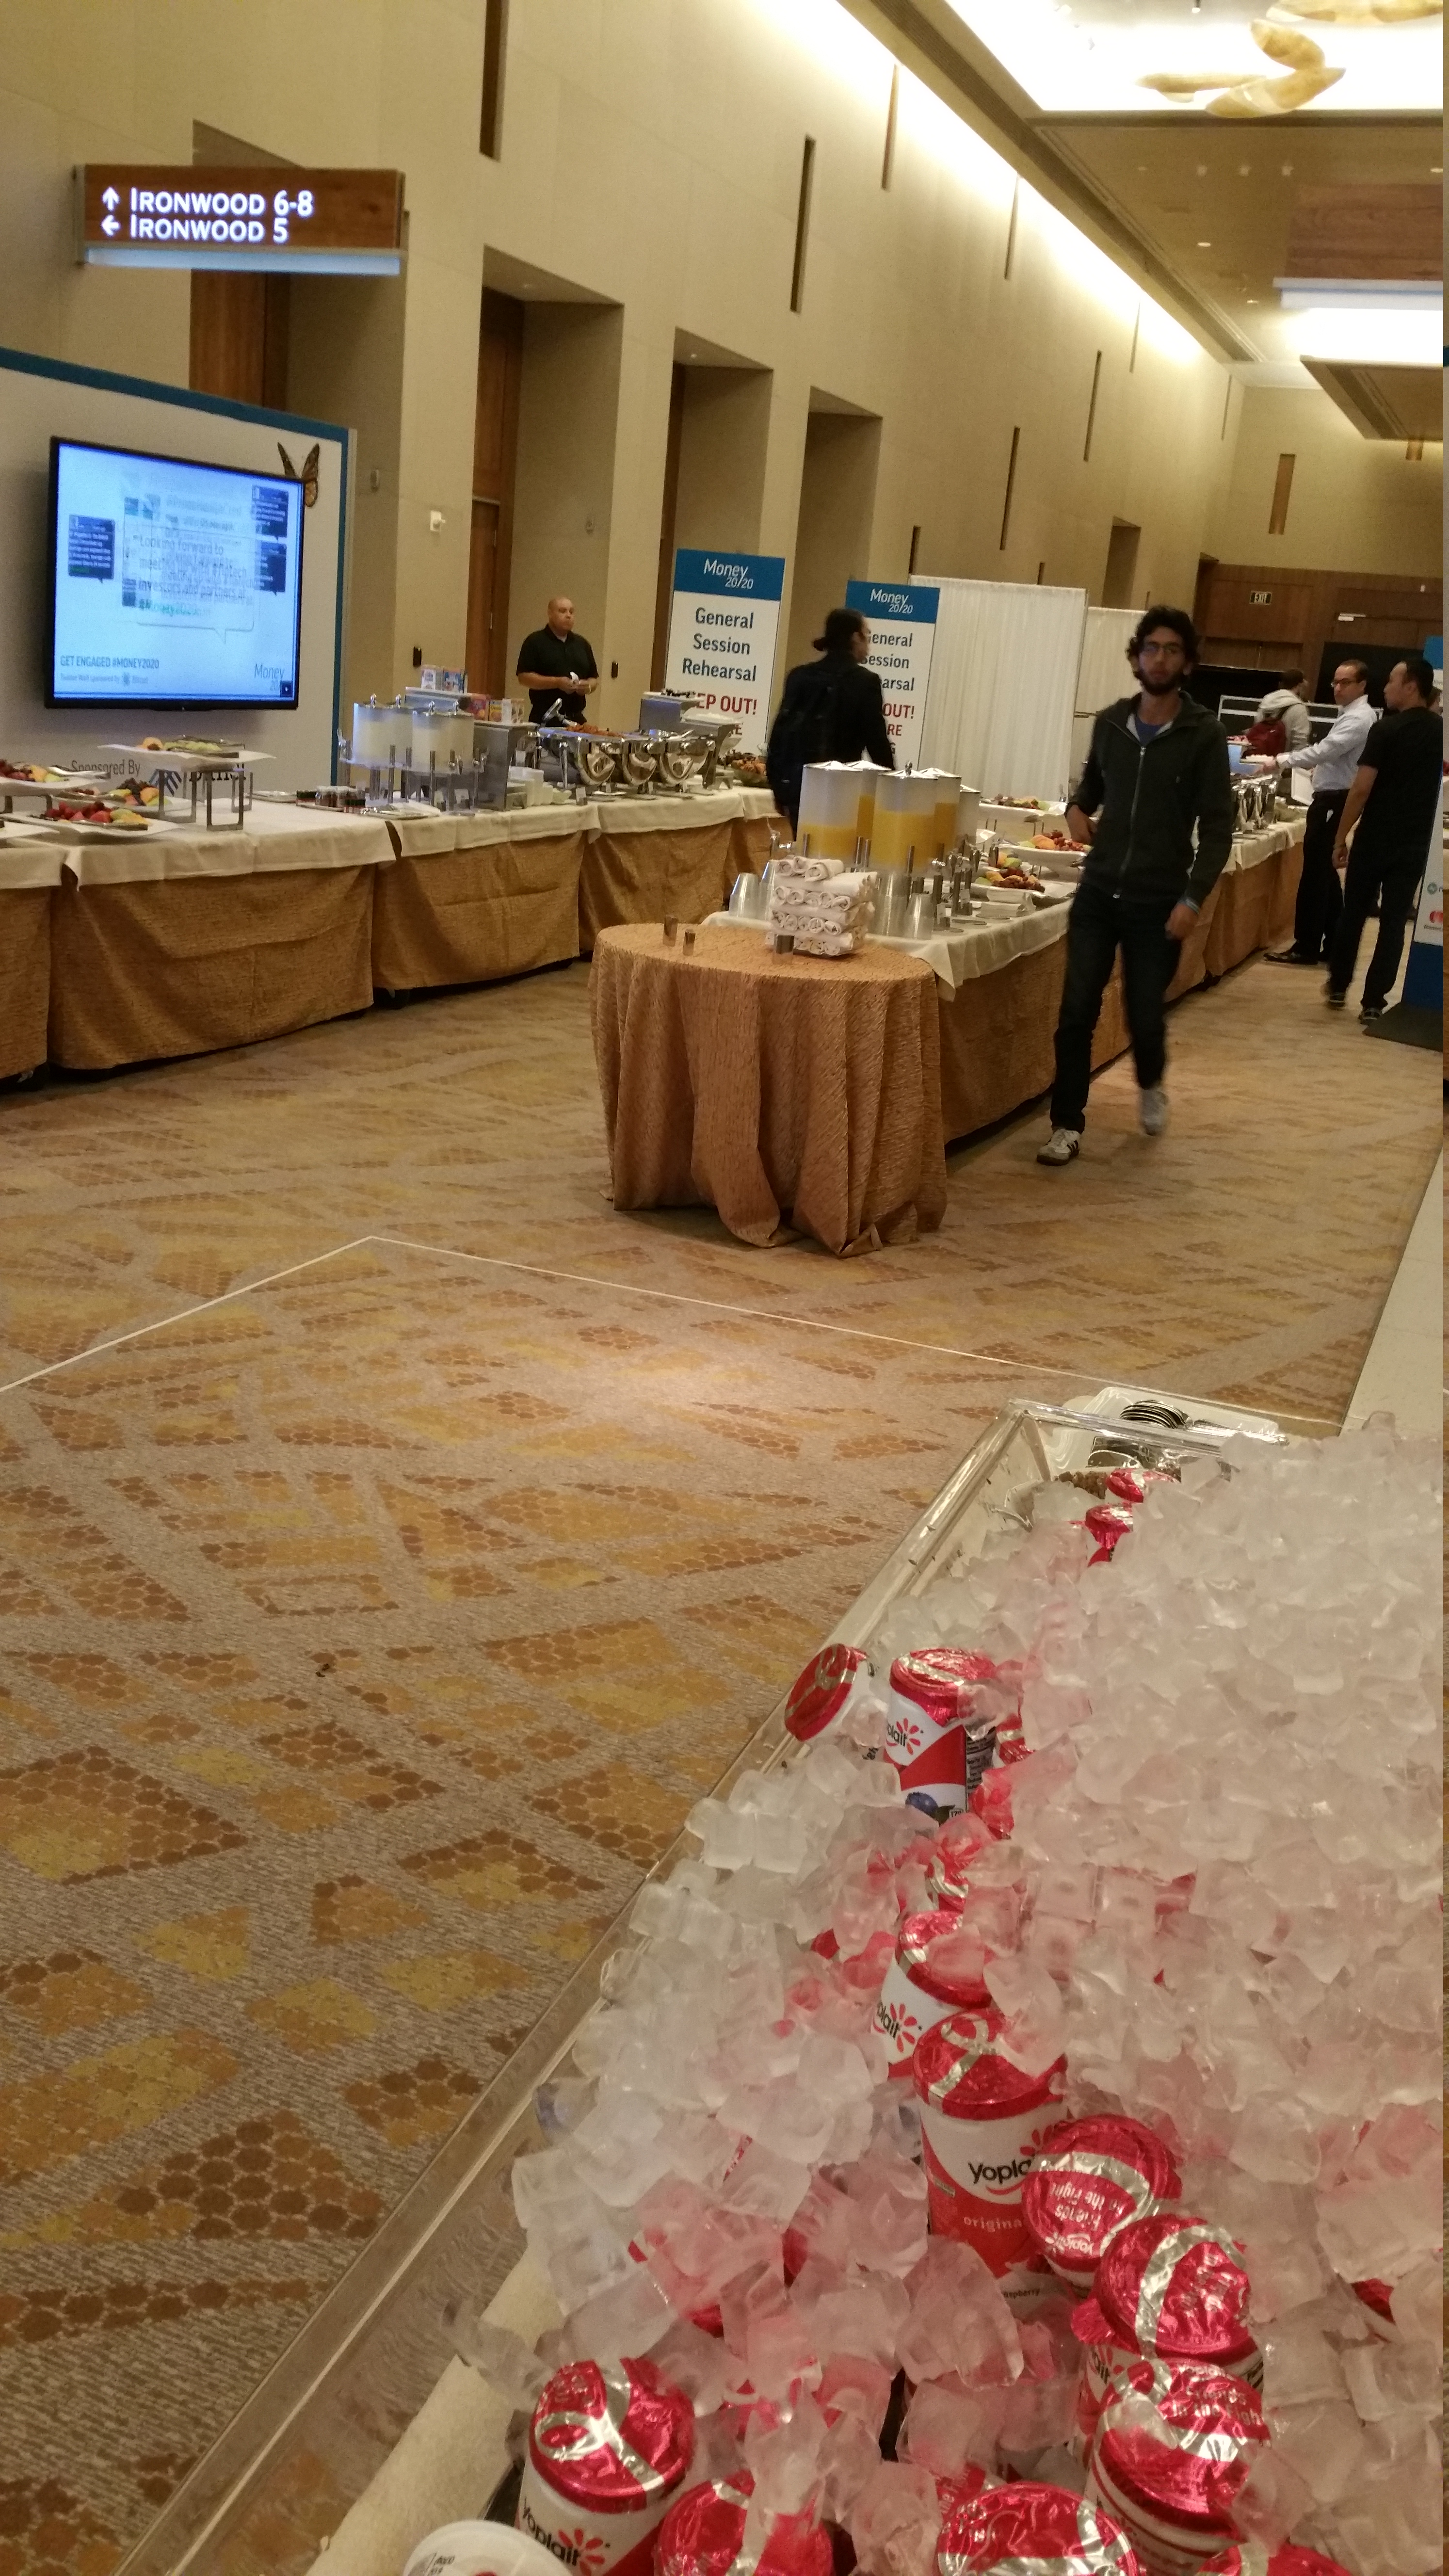 Breakfast is served at Money 2020.